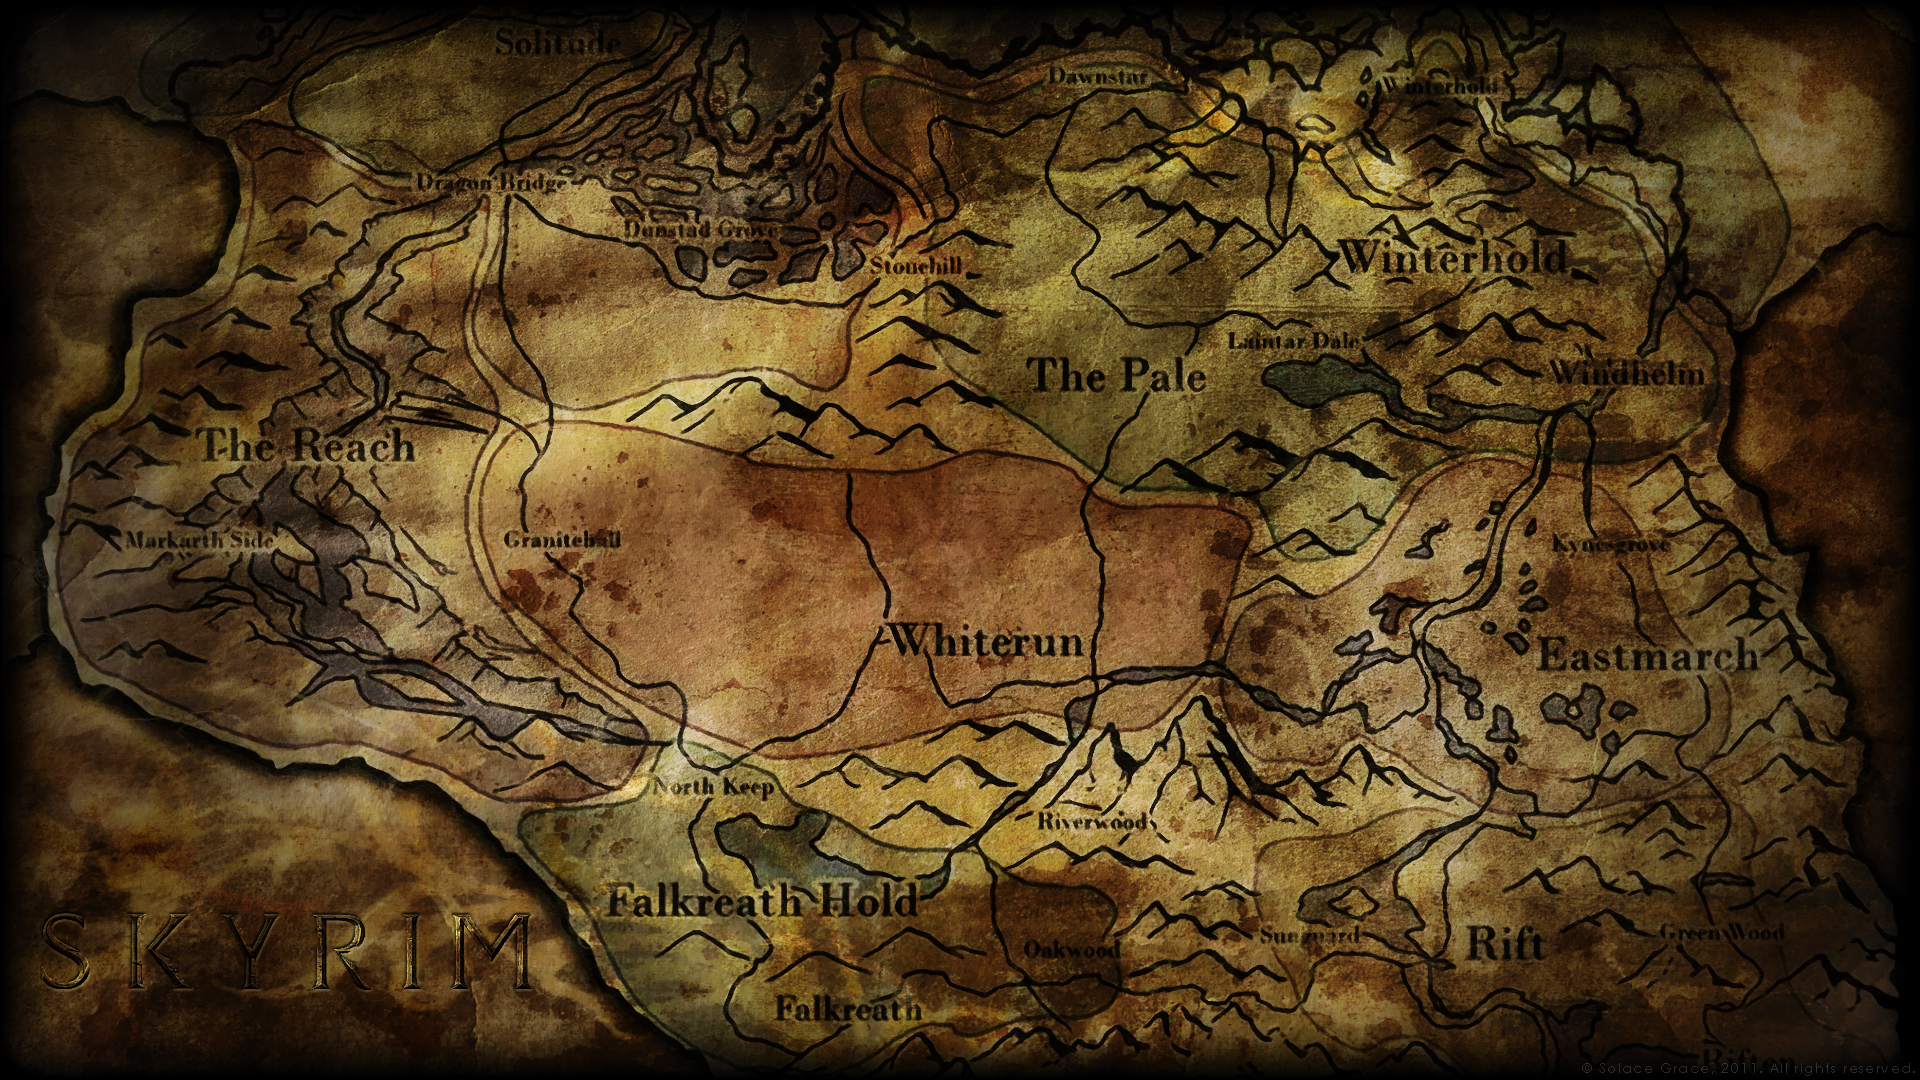 skyrim map wallpaper - wallpapersafari